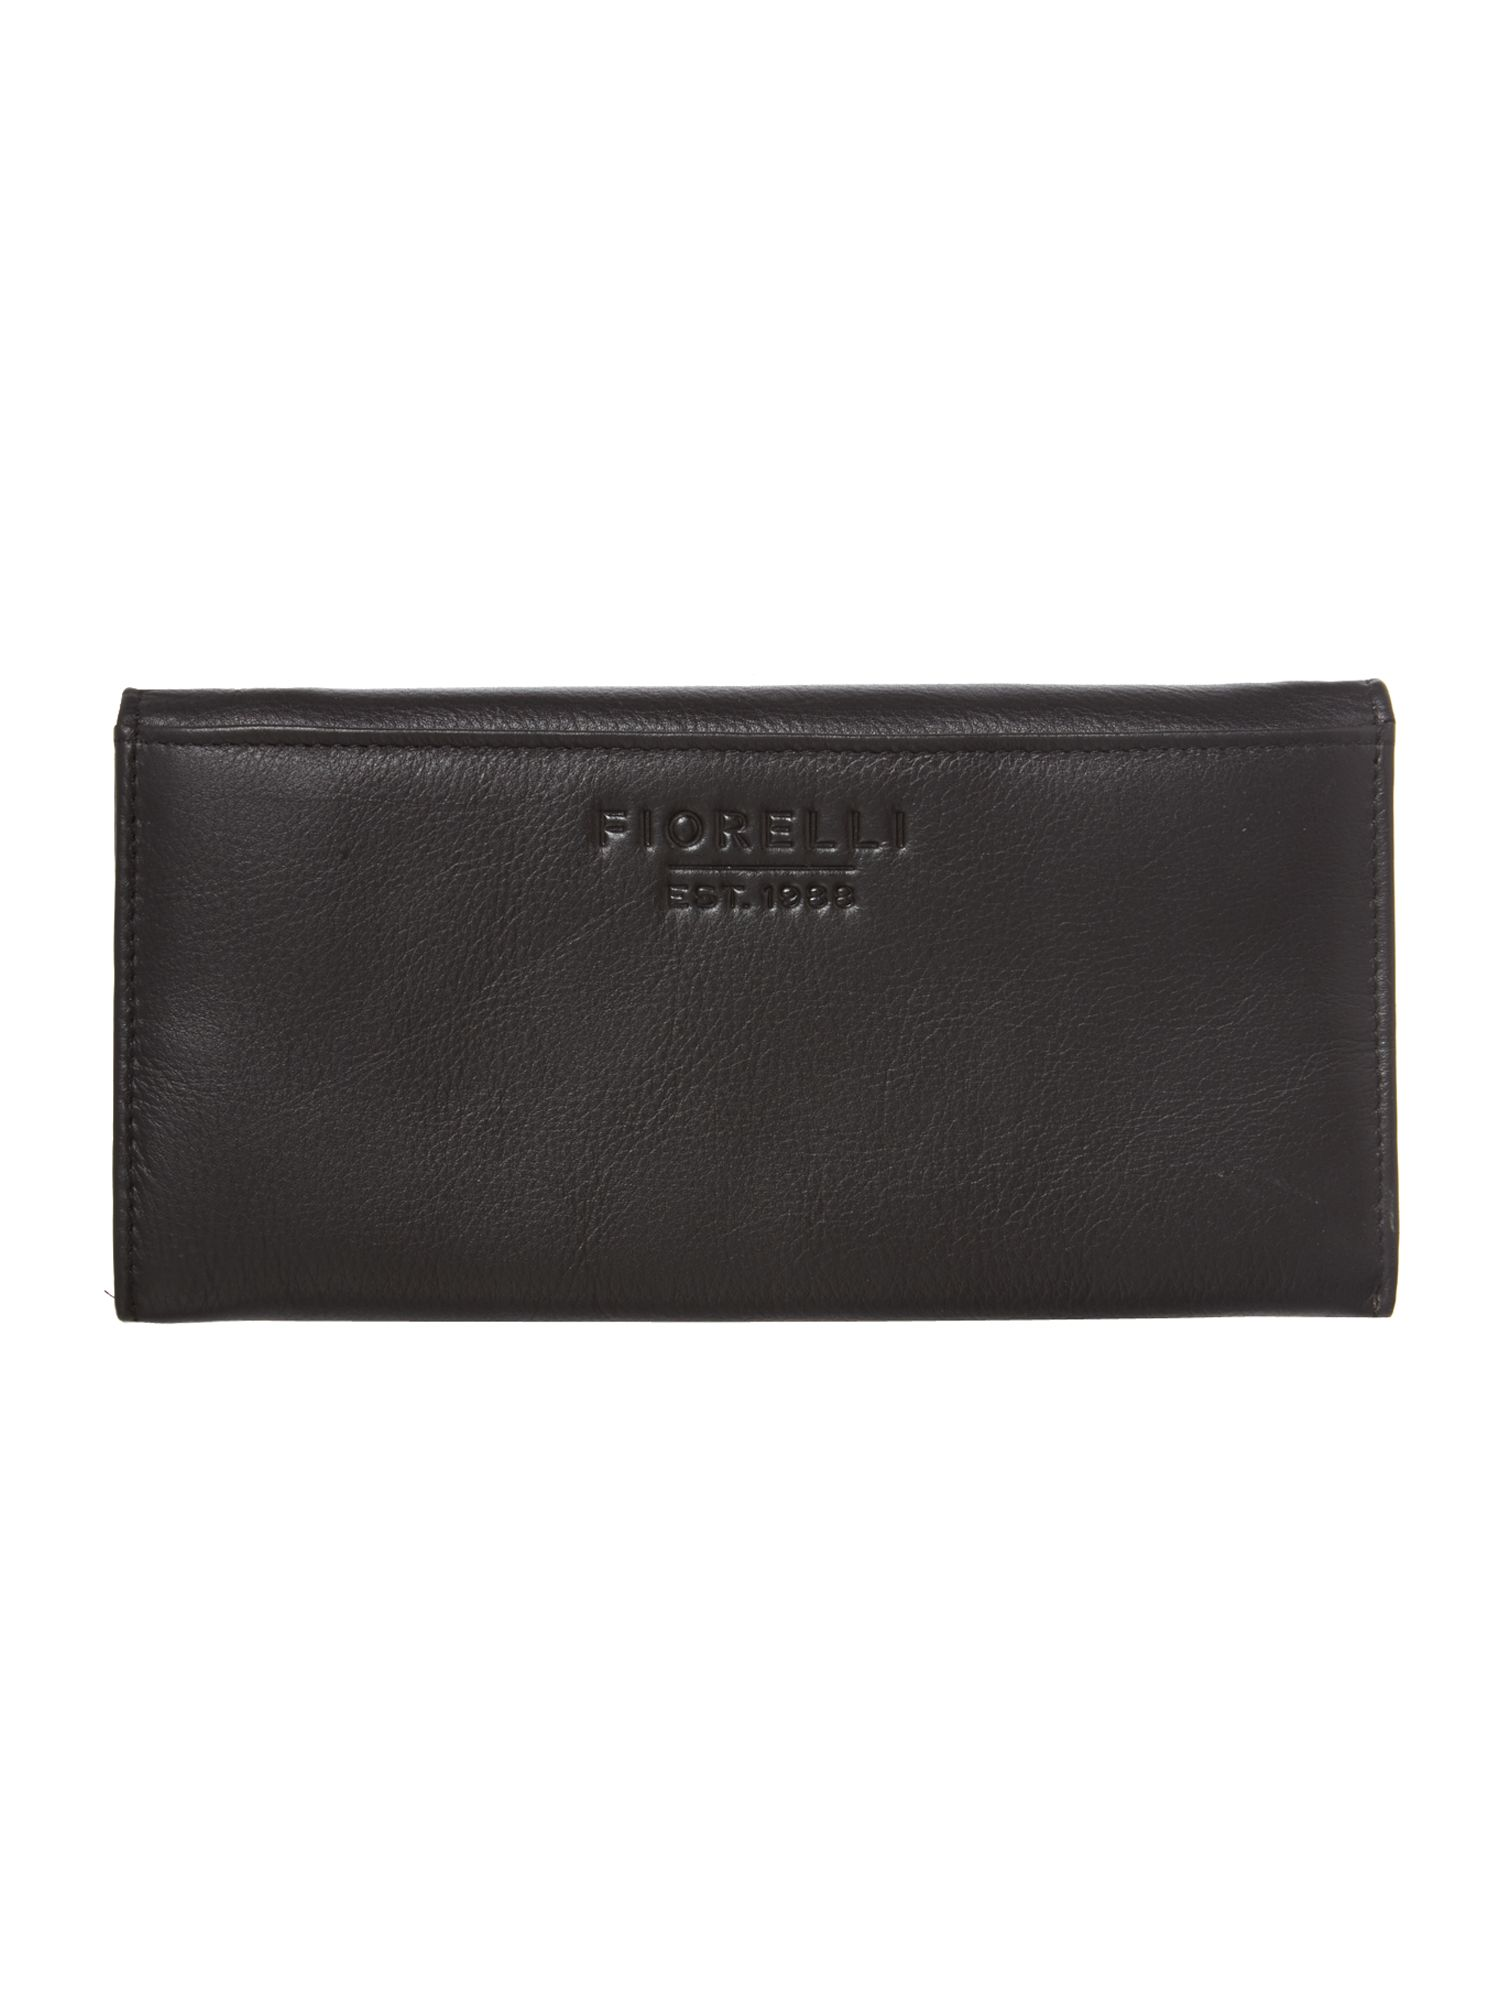 Sarah large black flapover purse